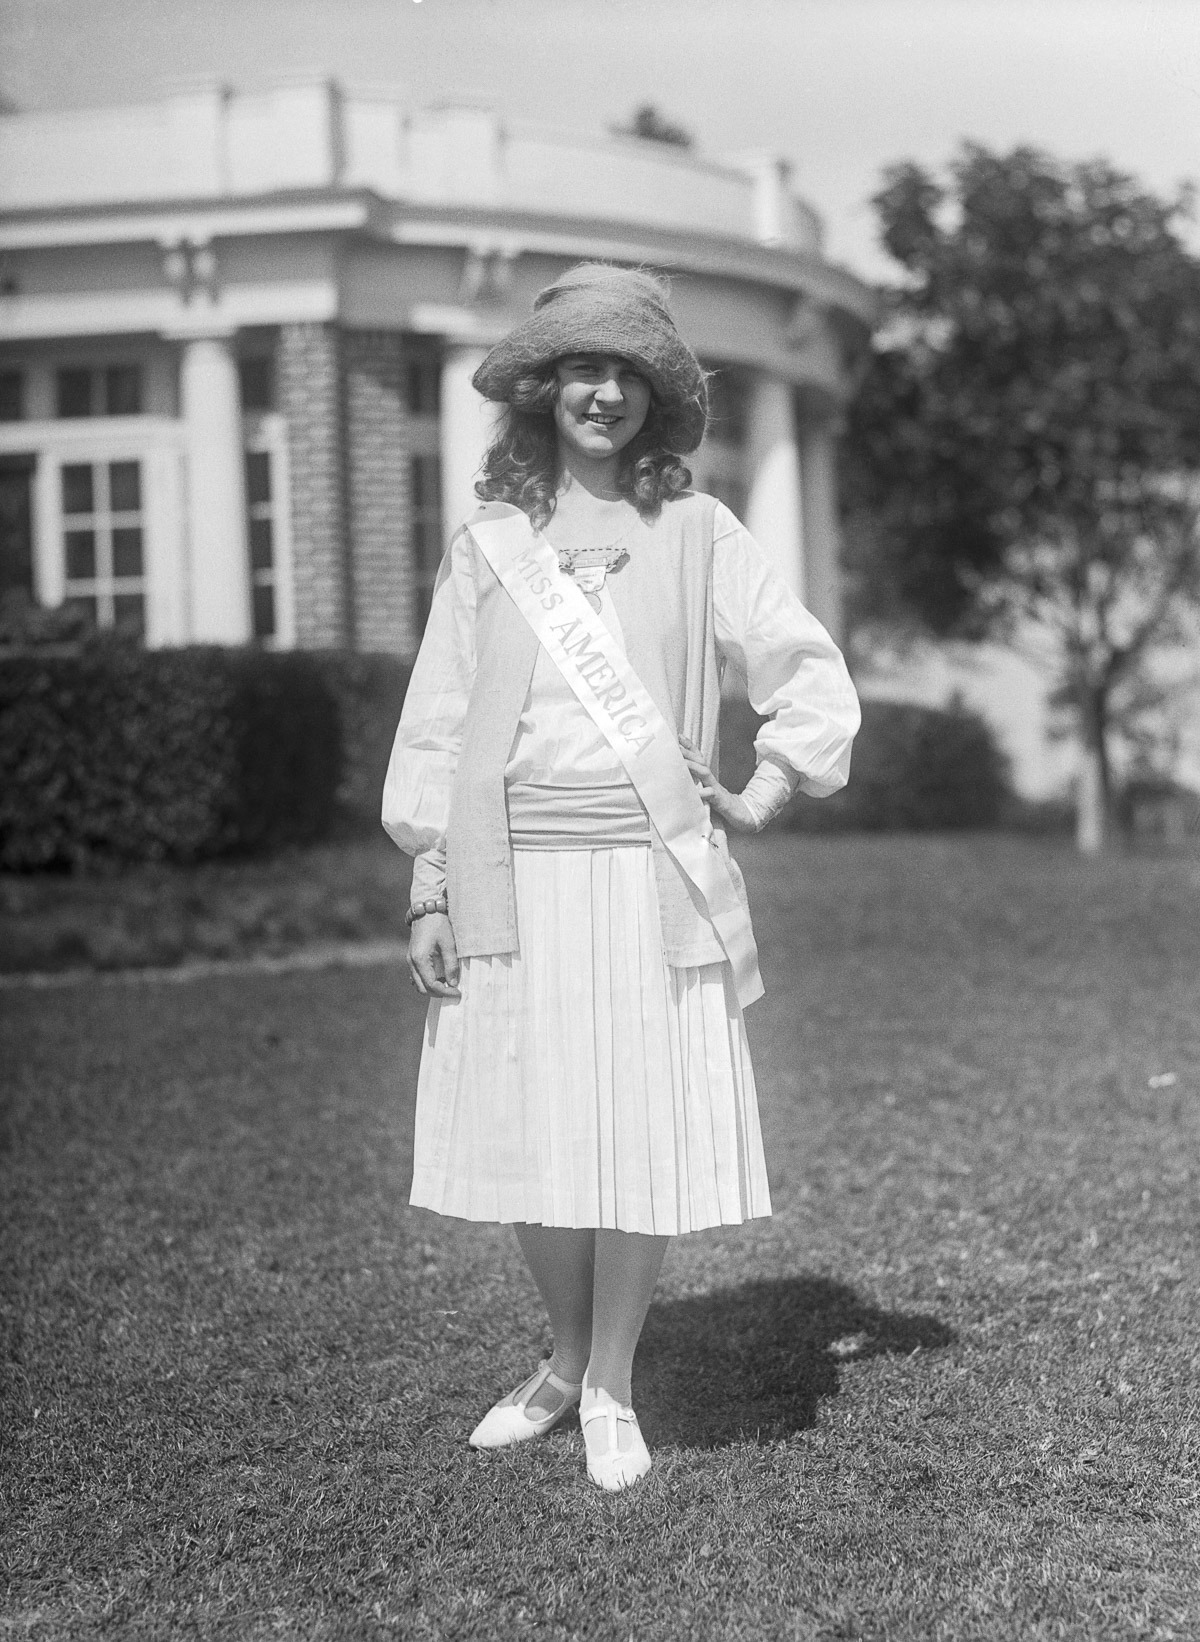 07 Sep 1922 --- Original caption: 9/7/1922-Miss Margaret Gorman, full length, in street clothes. She is the current Mrs. America. Photograph. --- Image by © Bettmann/CORBIS